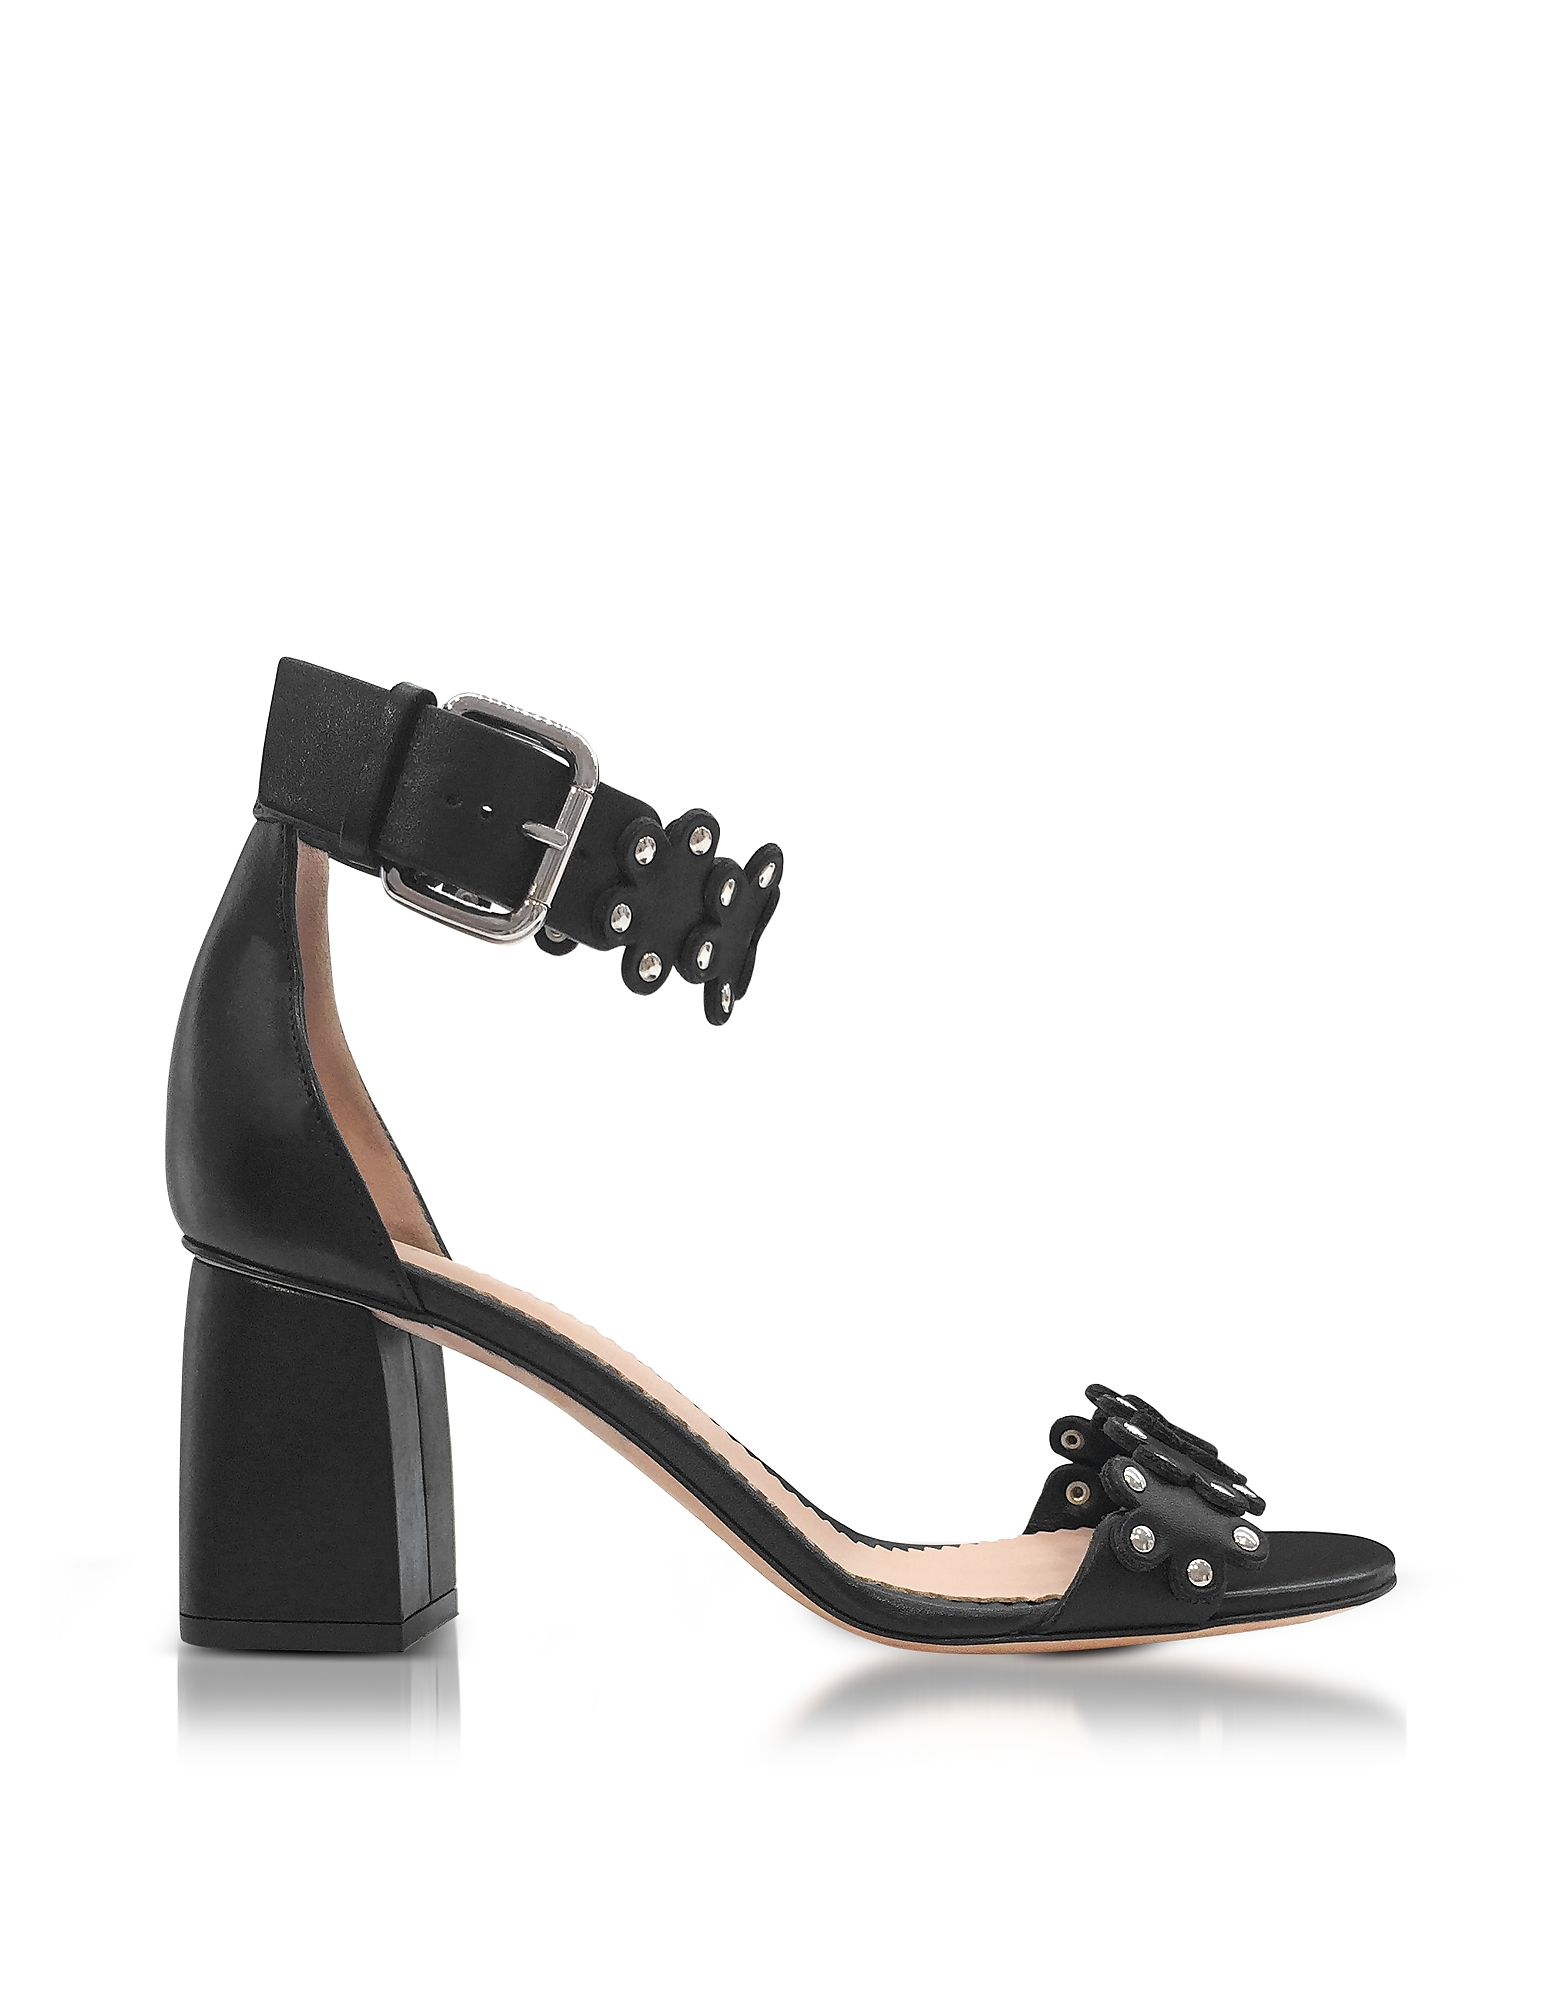 RED Valentino Shoes, Black Studded Leather Heel Sandals